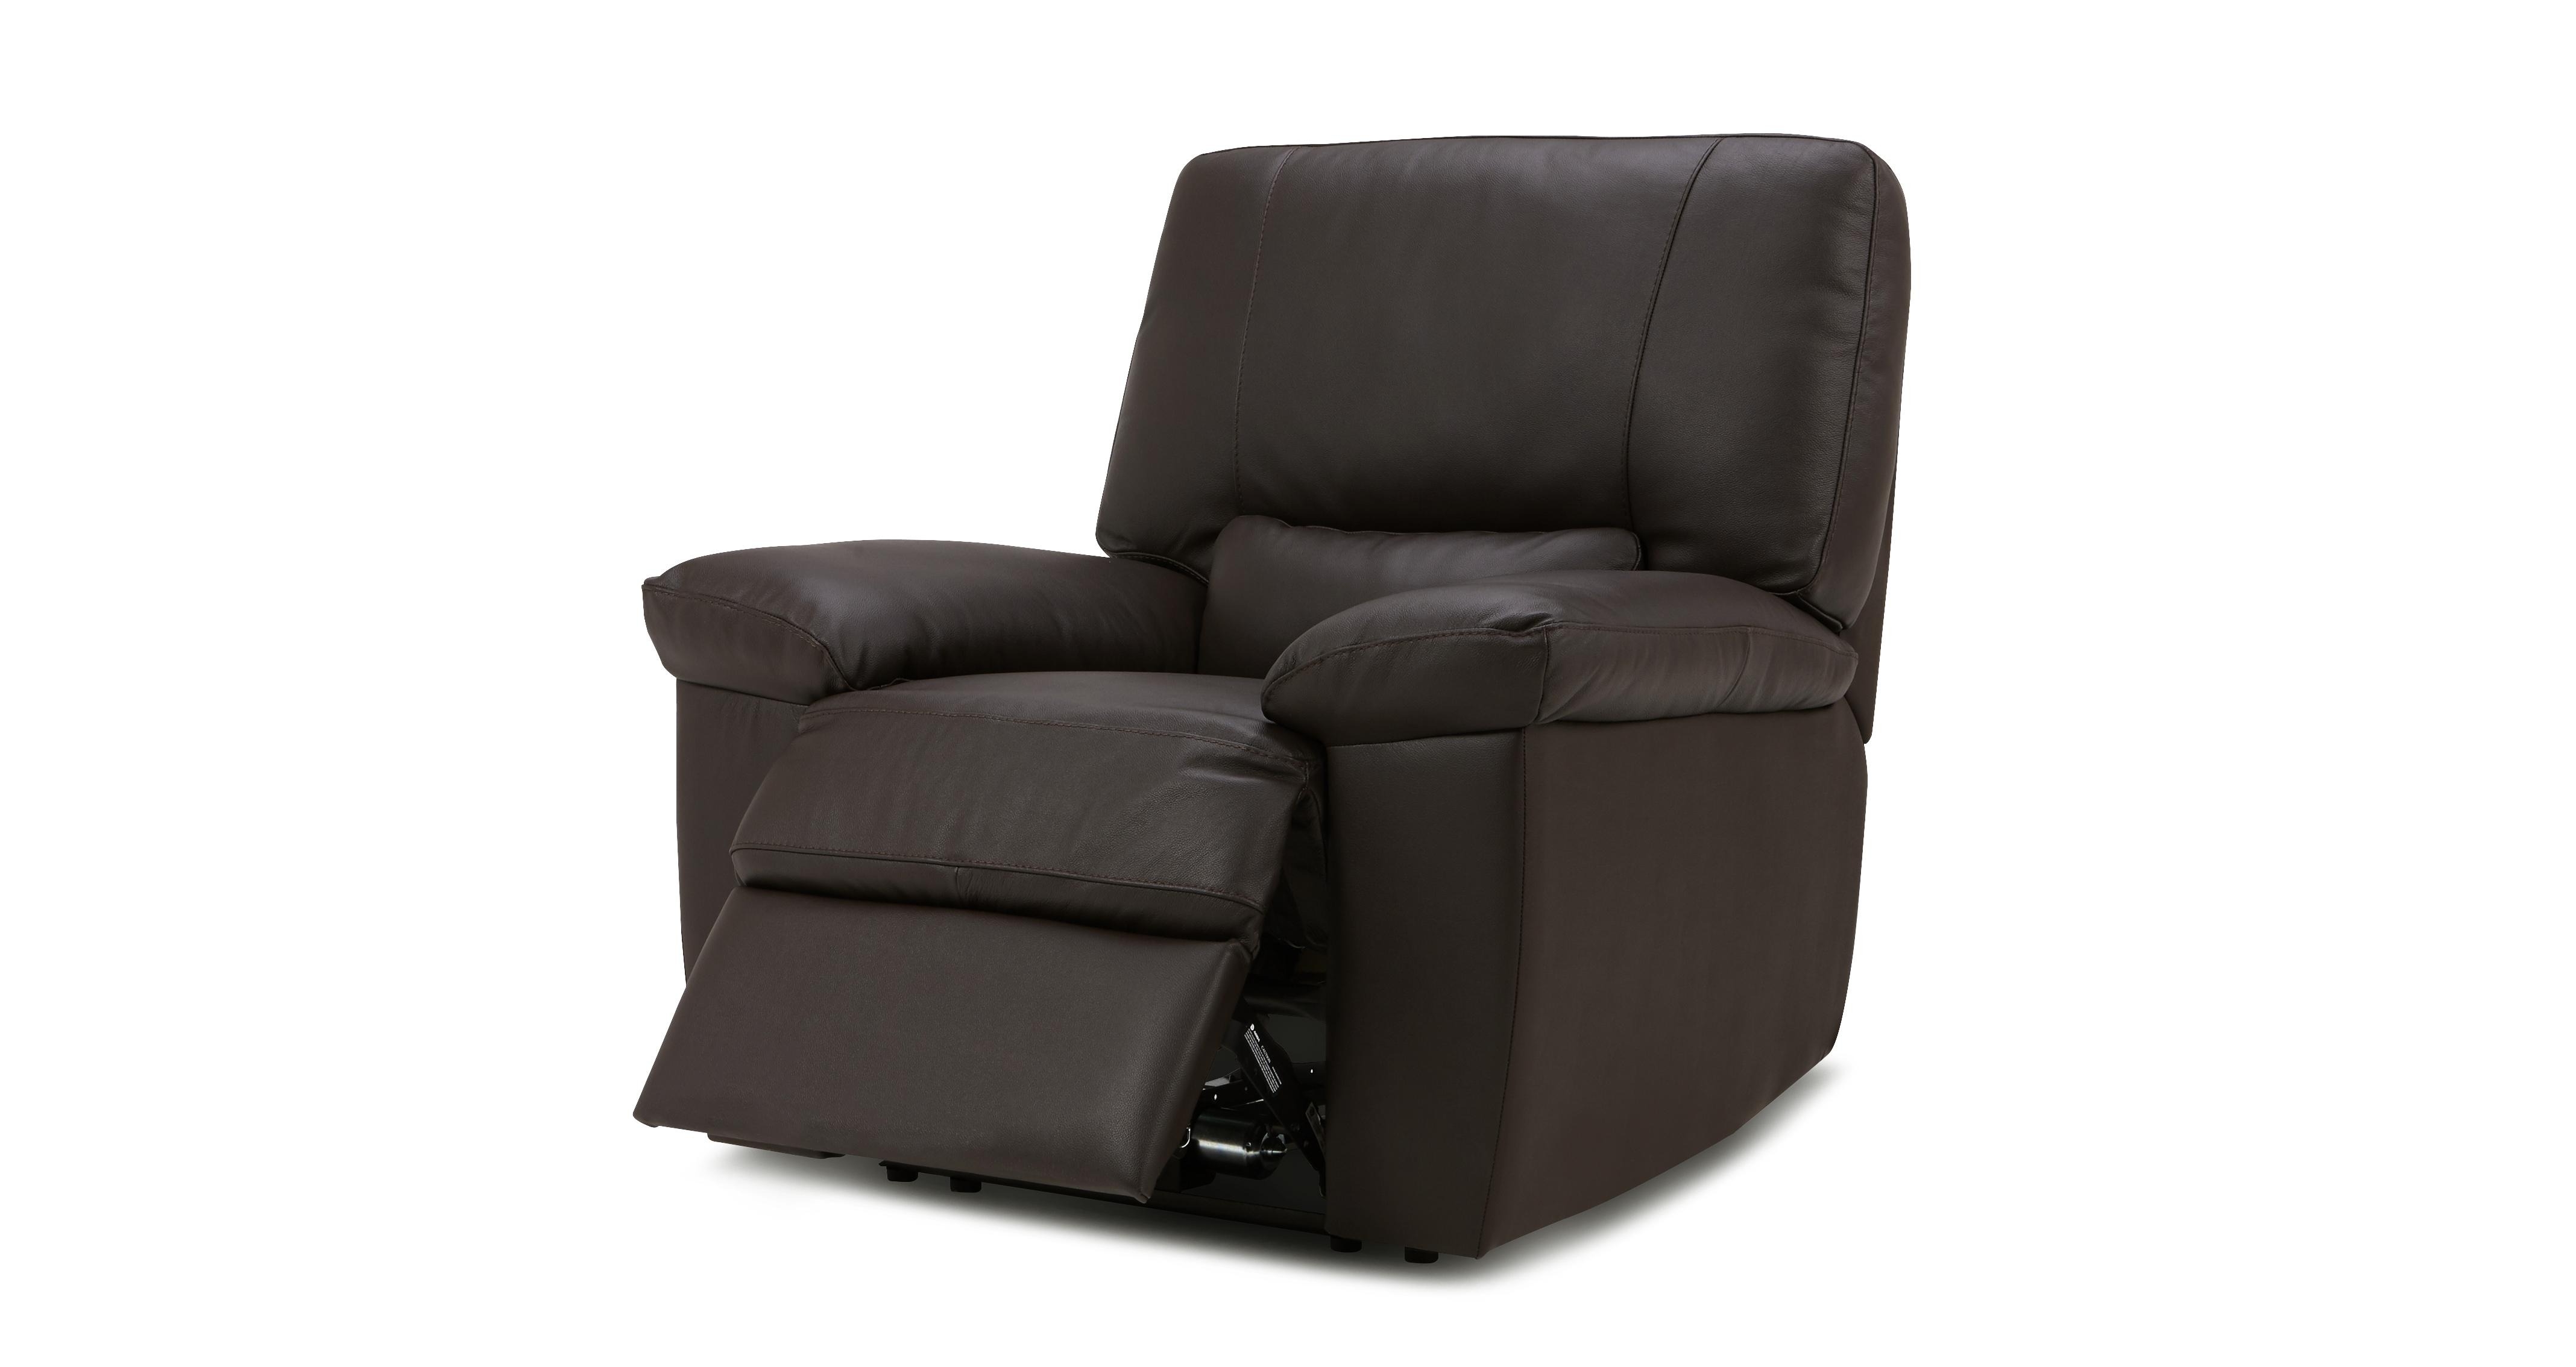 GXD Avail Leather and Leather Look Electric Recliner Chair Hazen  sc 1 st  DFS & Recliner Chairs In A Range Of Styles For Your Home | DFS islam-shia.org